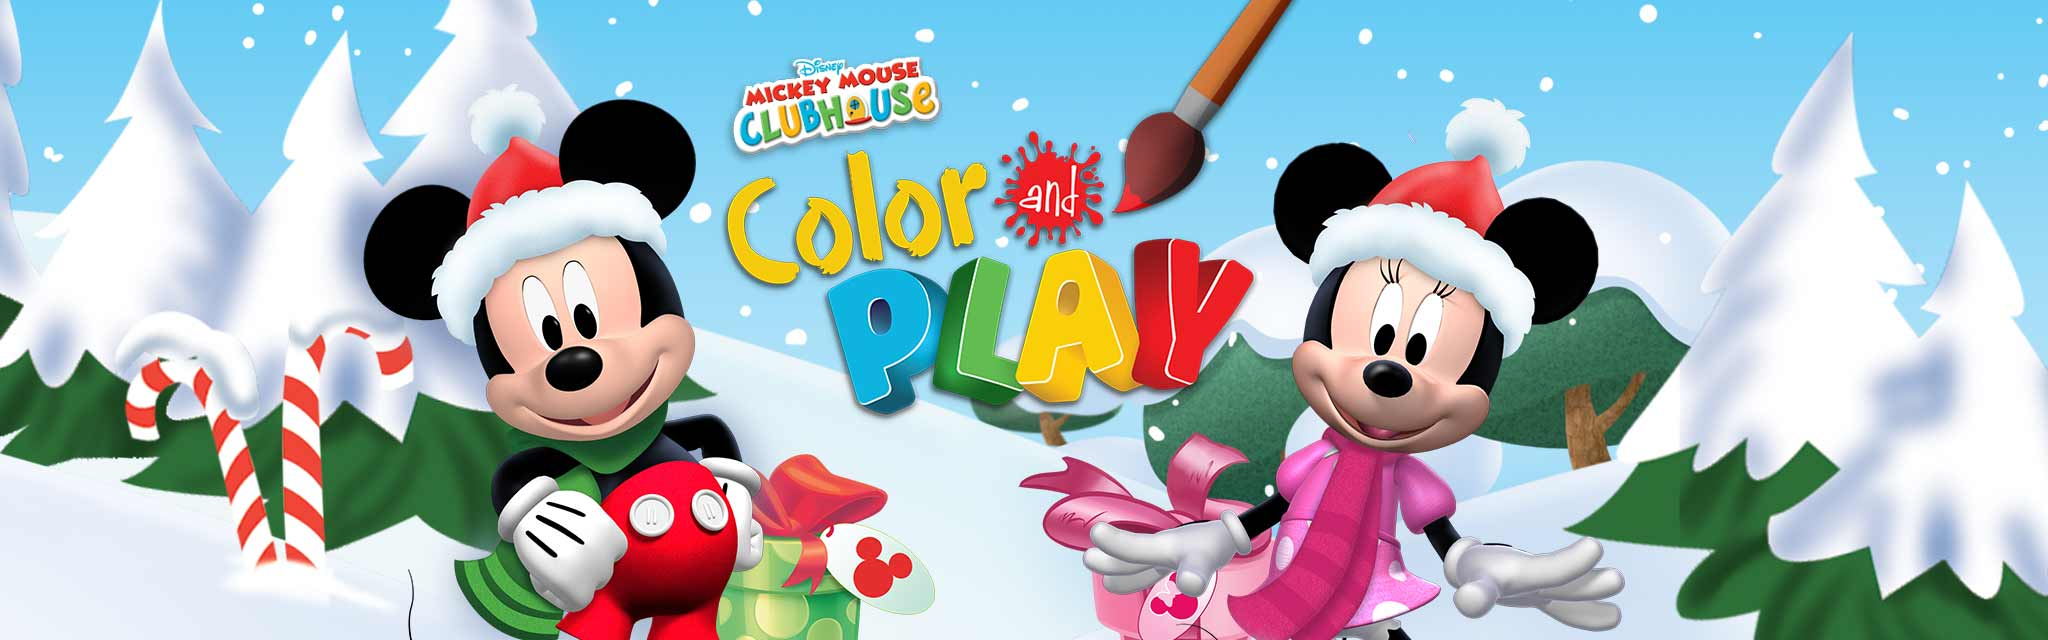 mickey mouse clubhouse color and play disney lol - Mickey Mouse Colouring Games